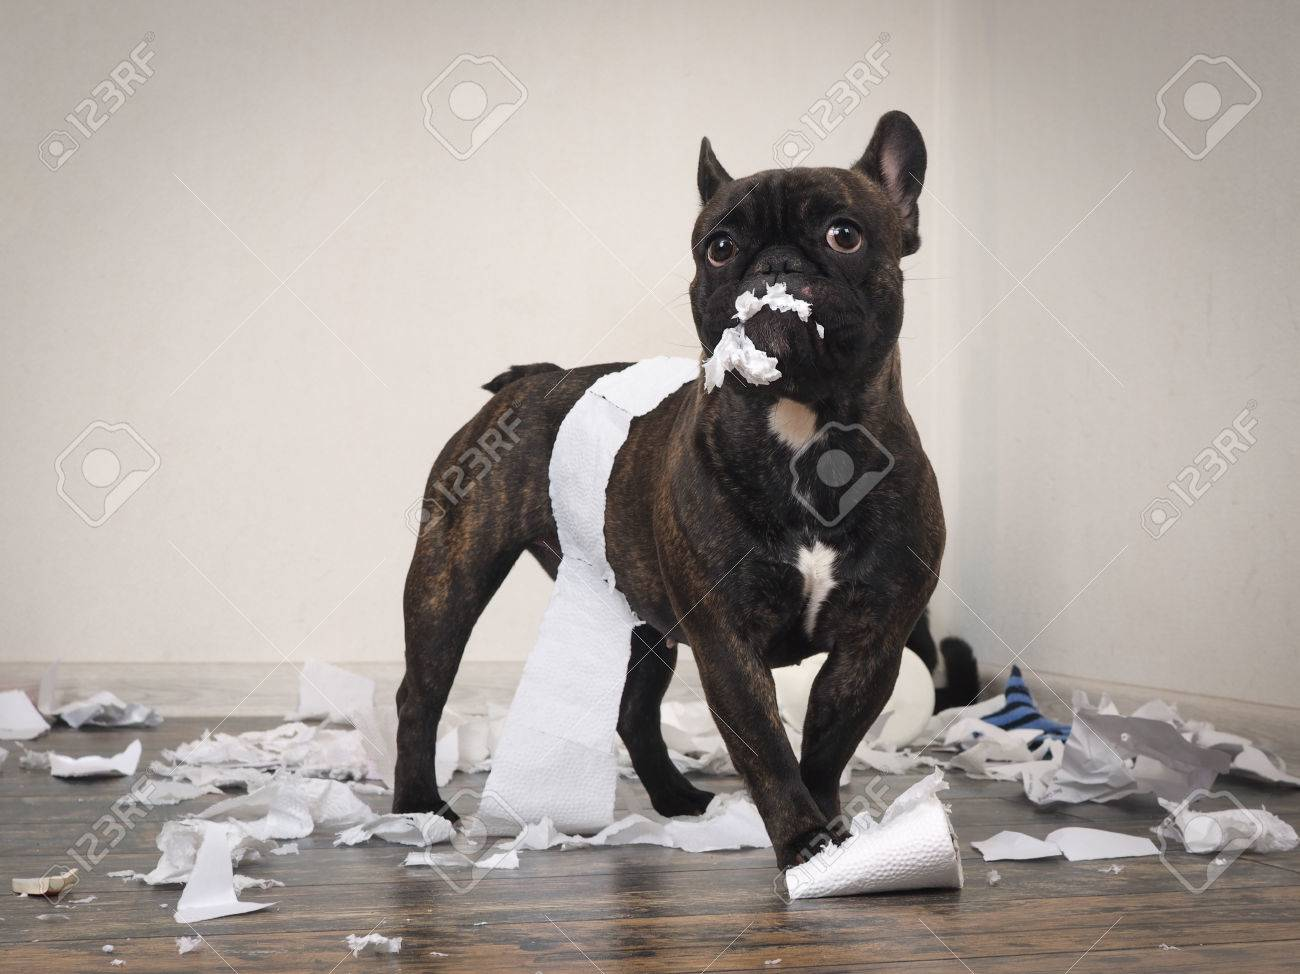 Funny dog made a mess in the room. Playful puppy French bulldog - 78494504